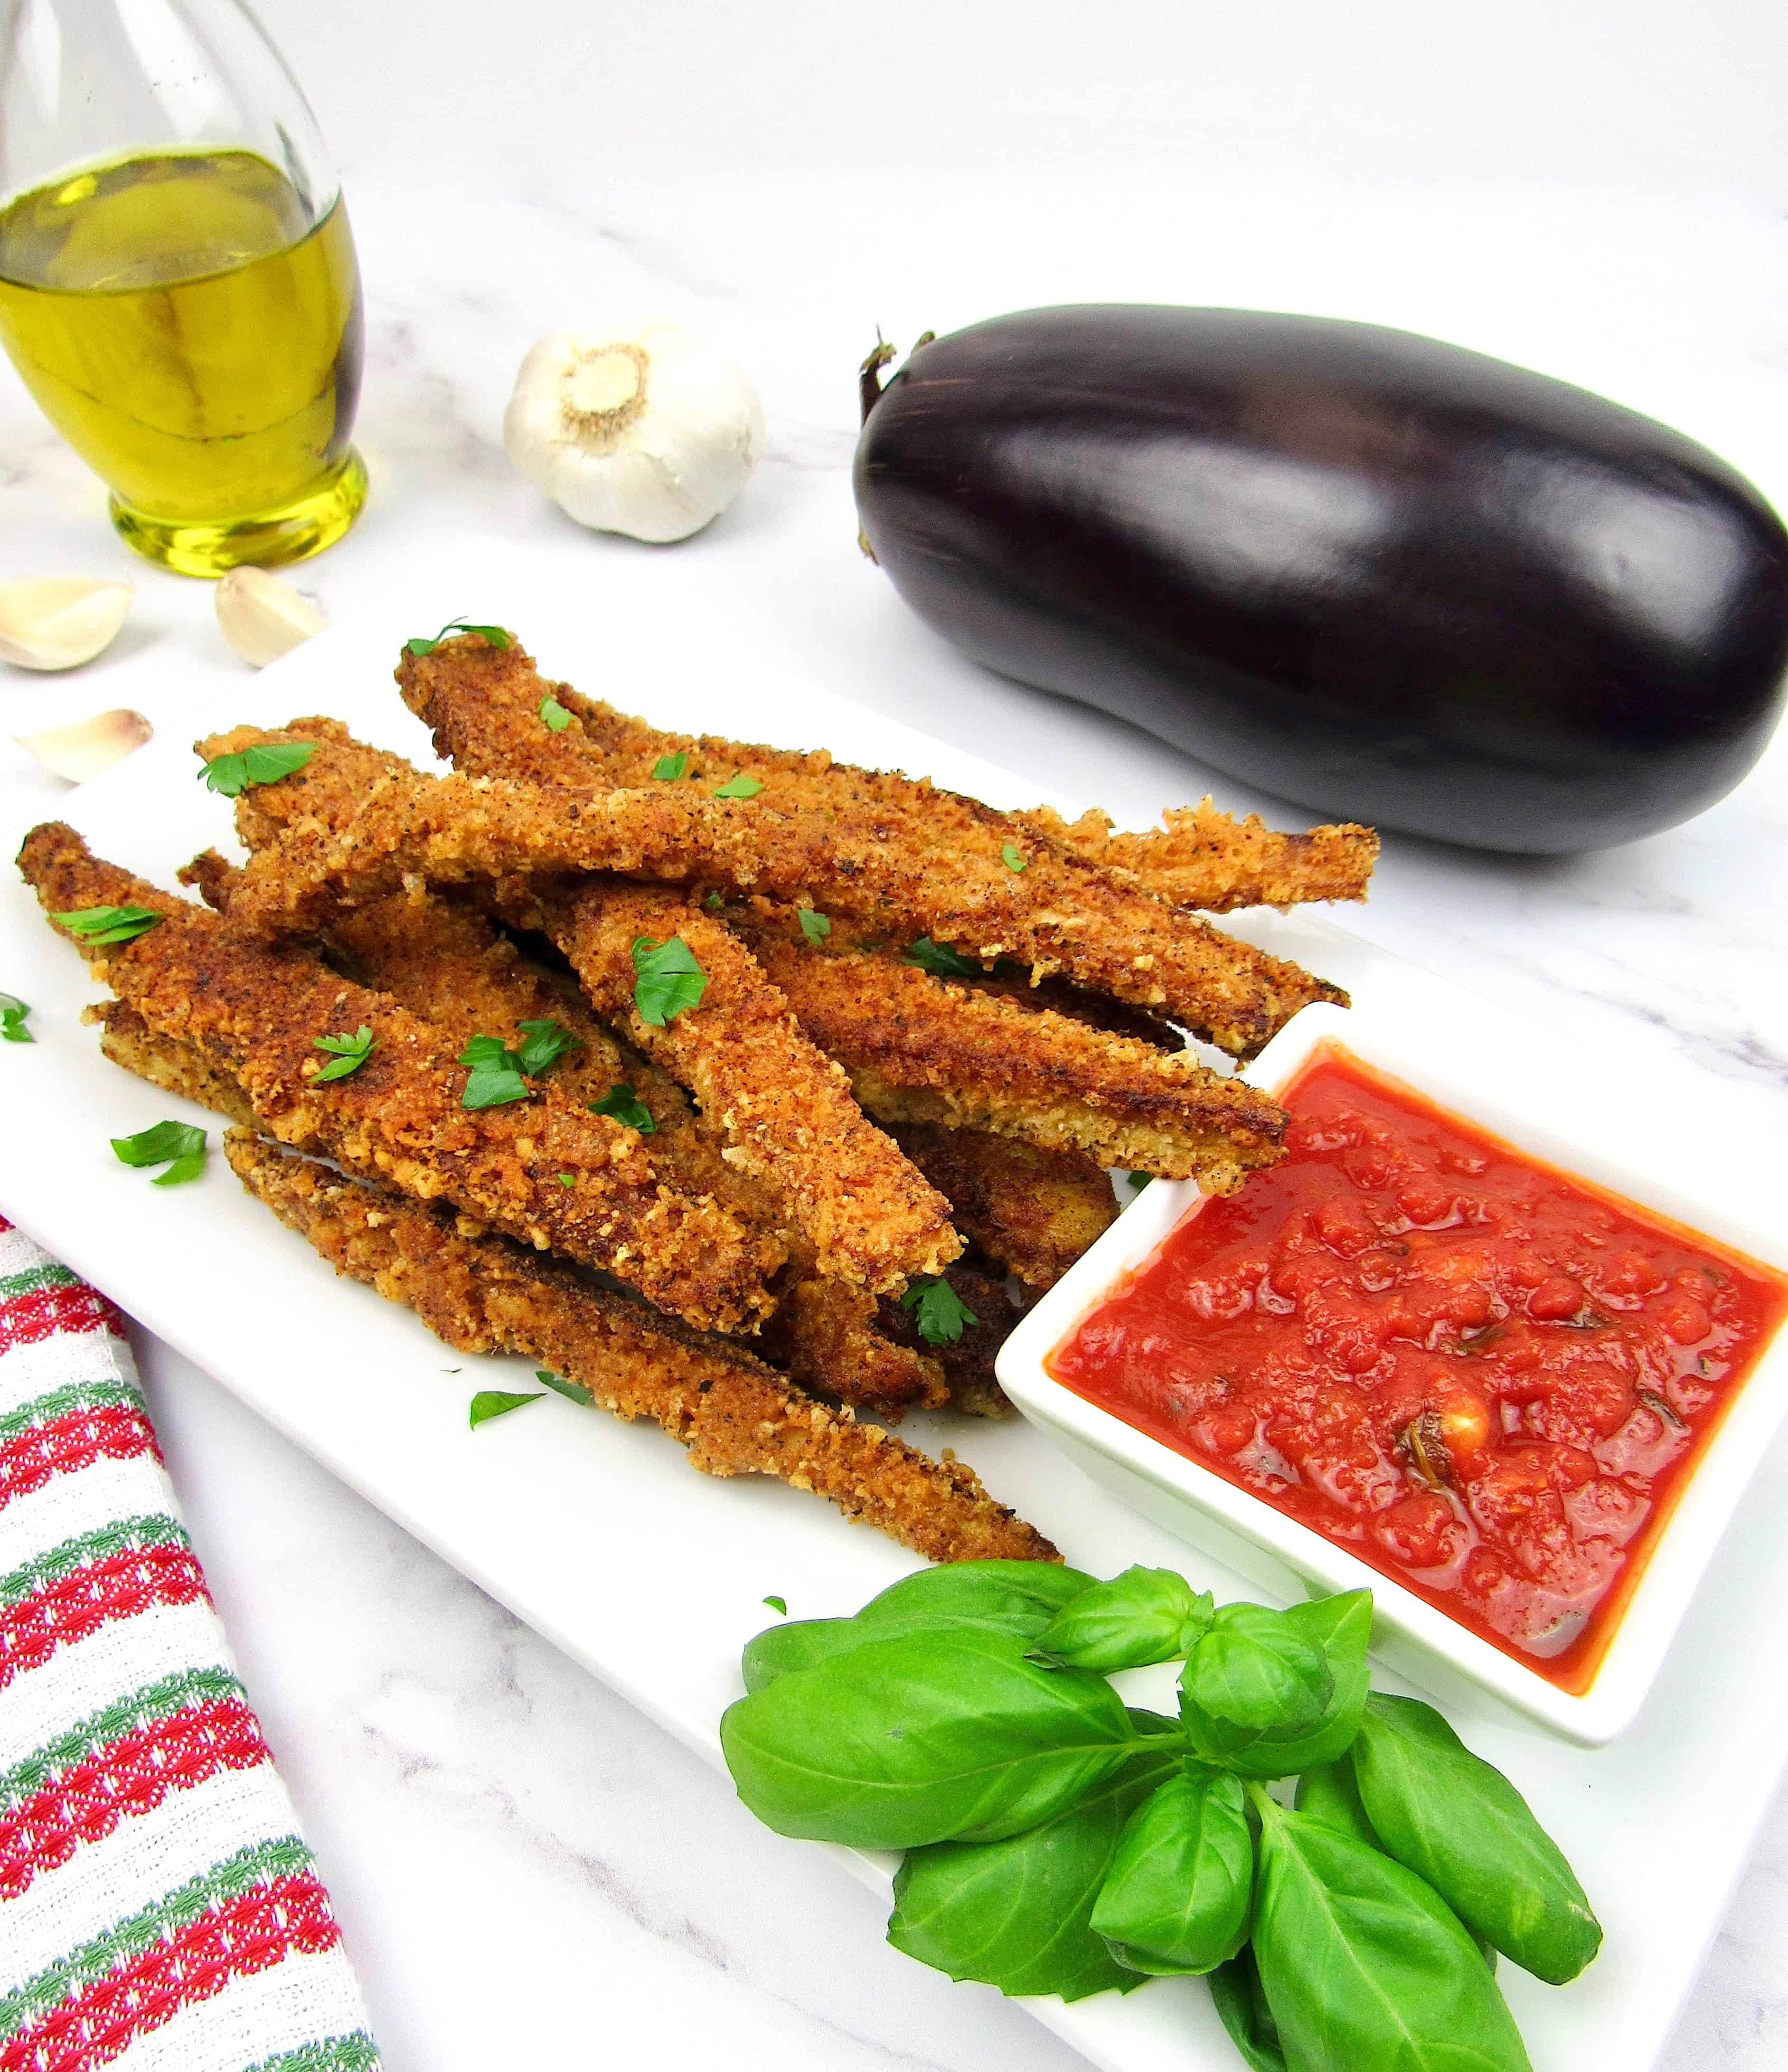 eggplant fries with side of marinara sauce and eggplant in background